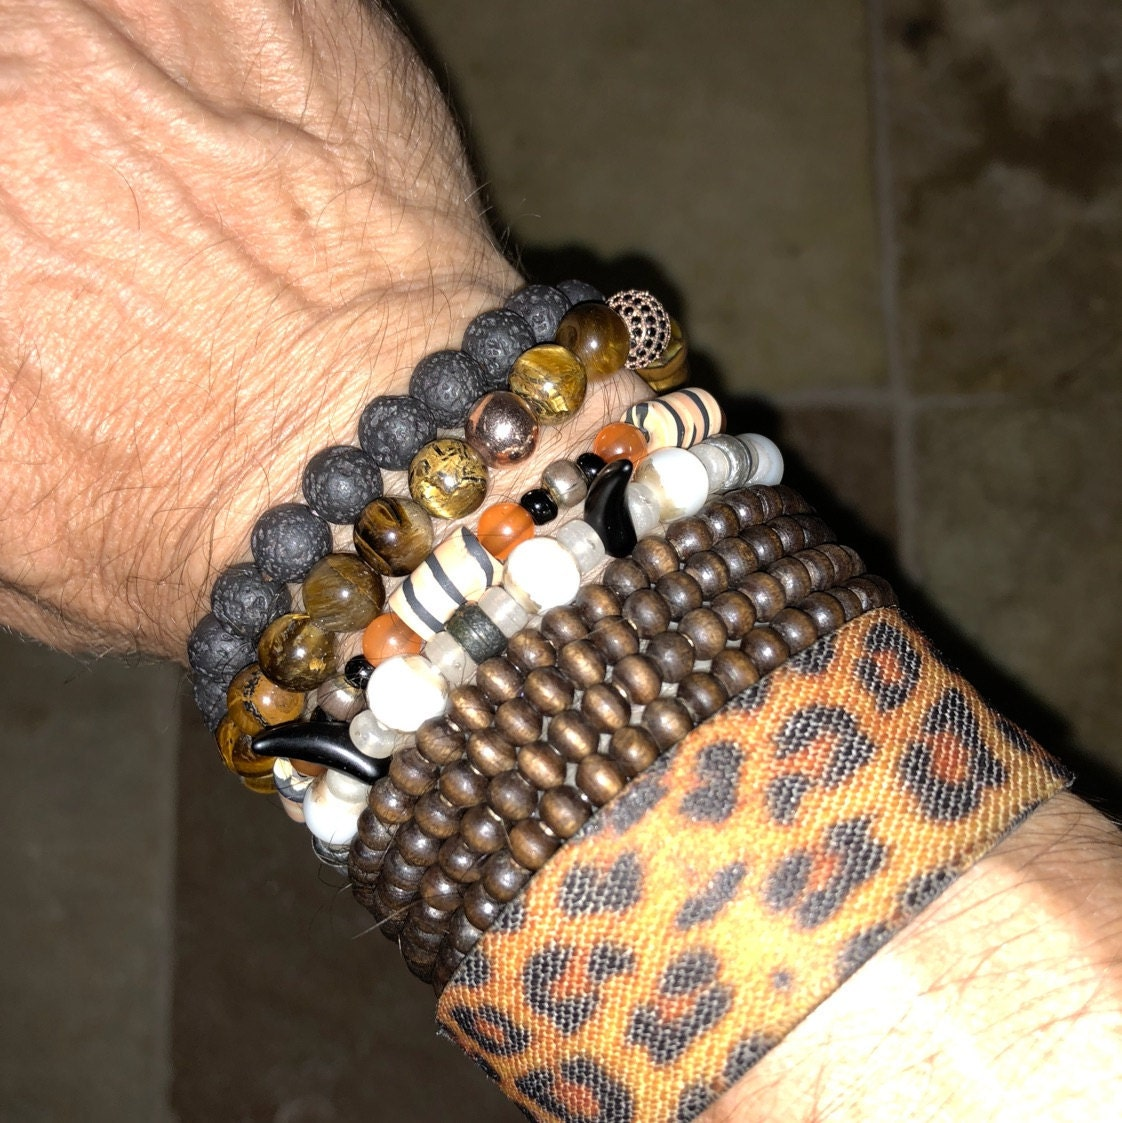 Spottacus Cheetah added a photo of their purchase